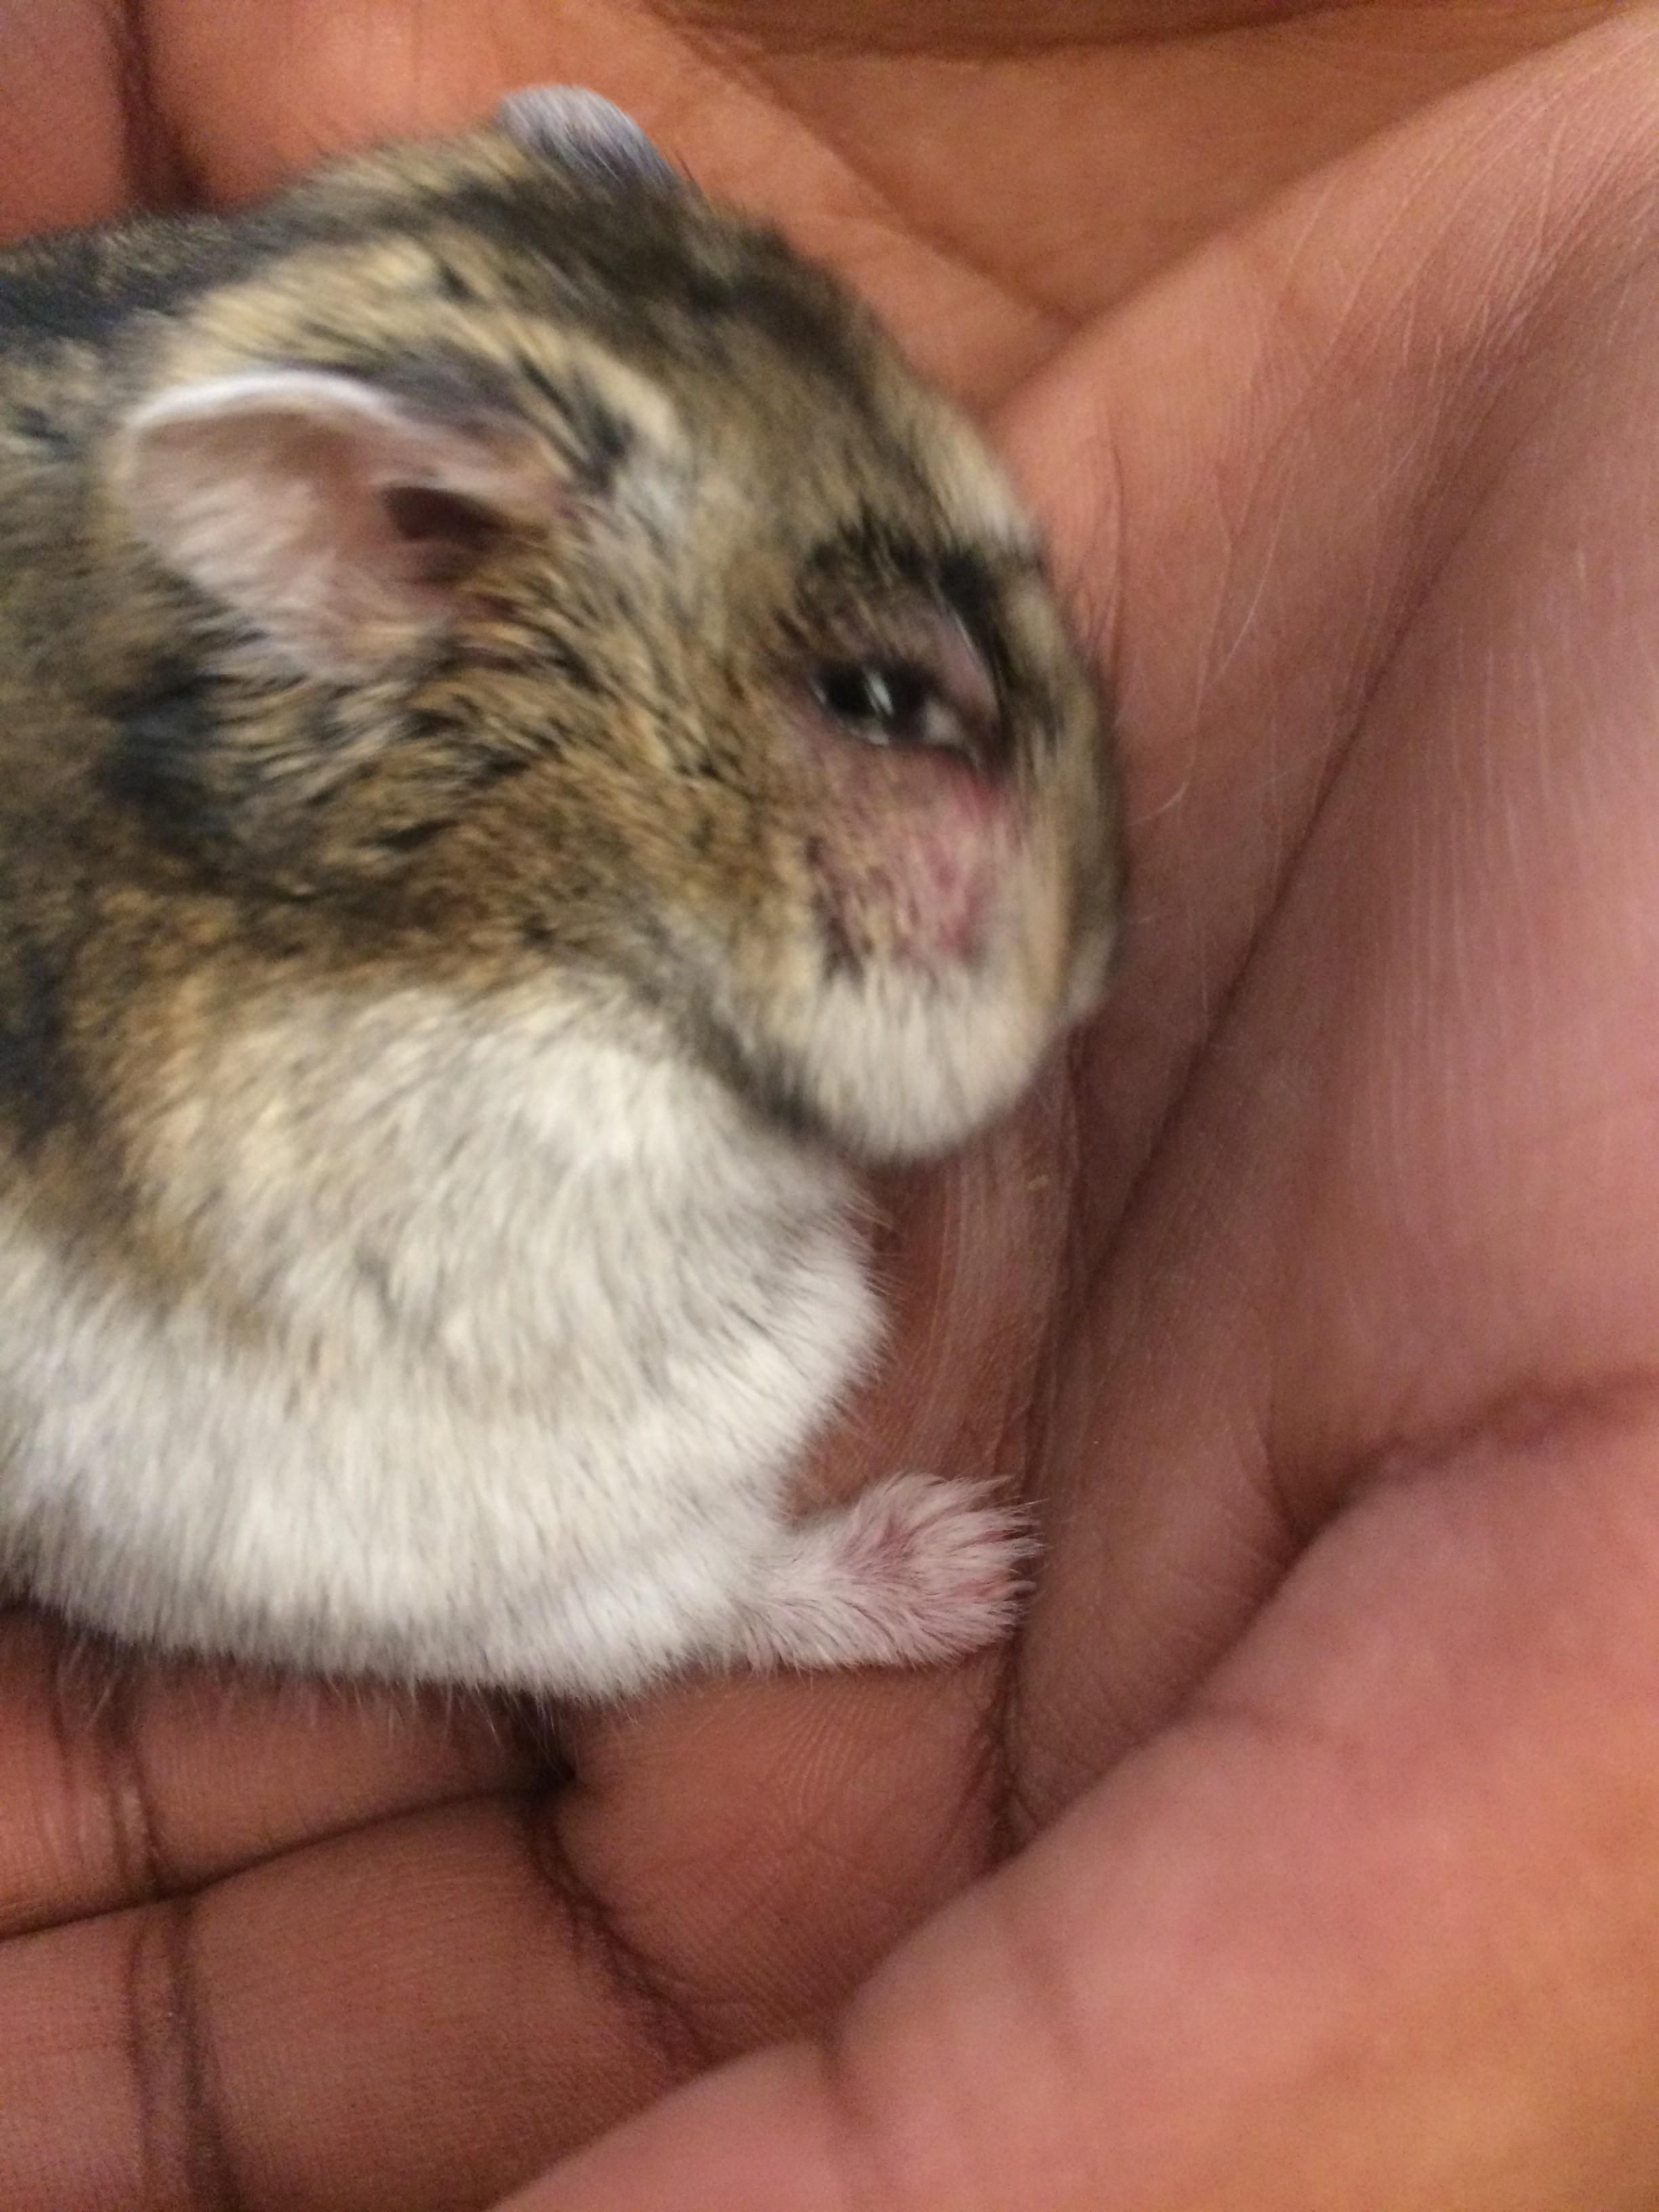 My Hamster Honey Has A Tumour Bless Her Soul And Wish Her Luck We Bought Medicine From Our Local Vet Https Ift Tt 2tu7v73 Cute Hamsters Hamster Vets